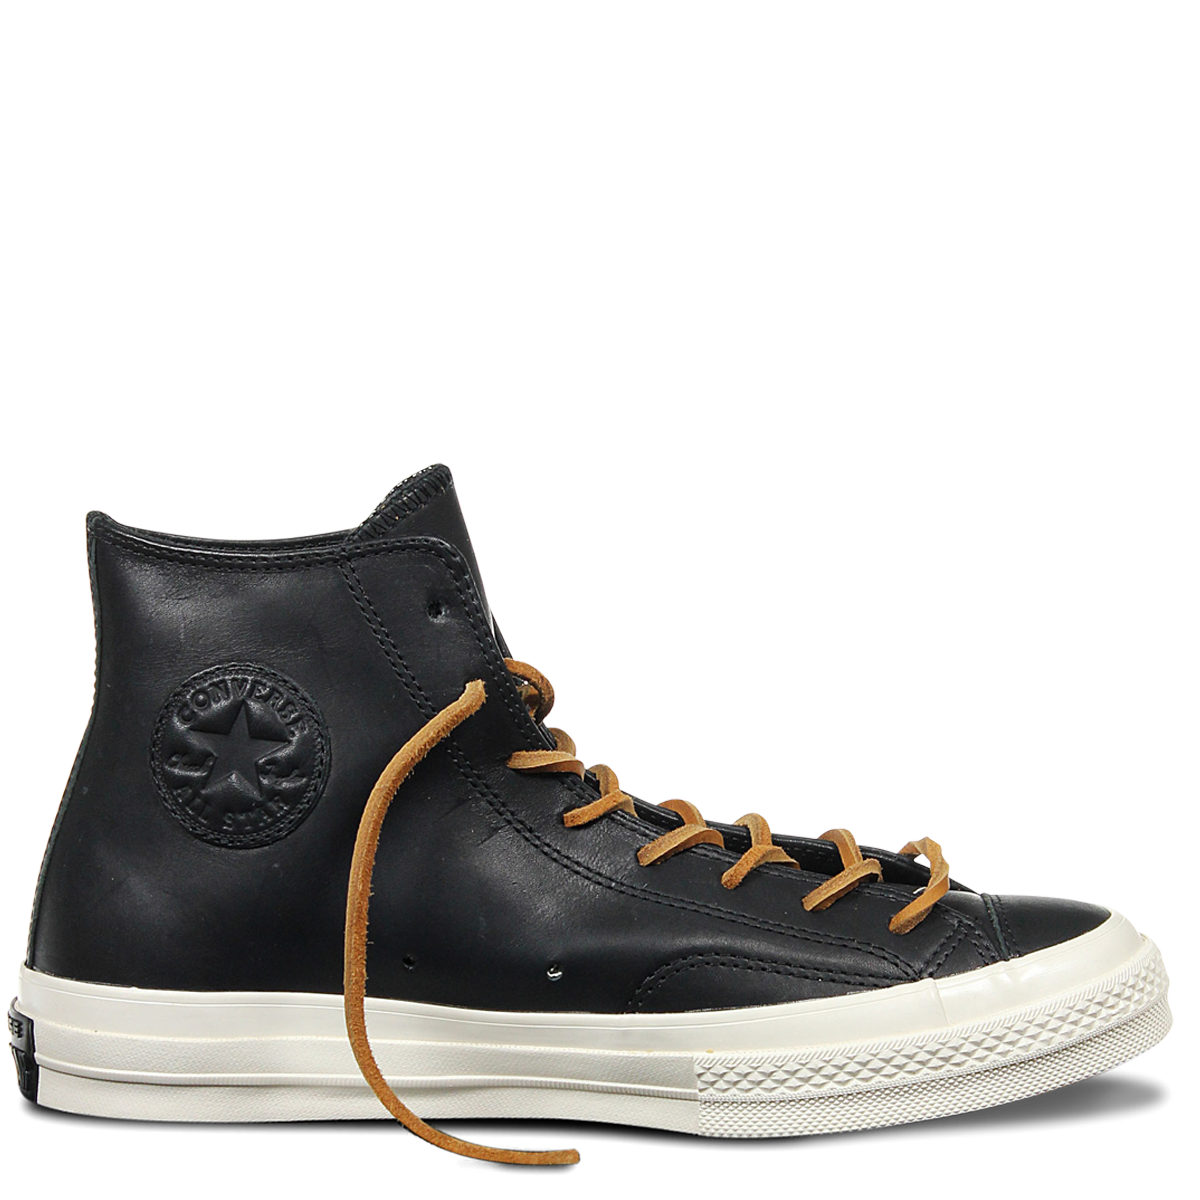 769138211ab0 Chuck Taylor All Star 70 Premium Leather Black Egret - Sneakers - Men